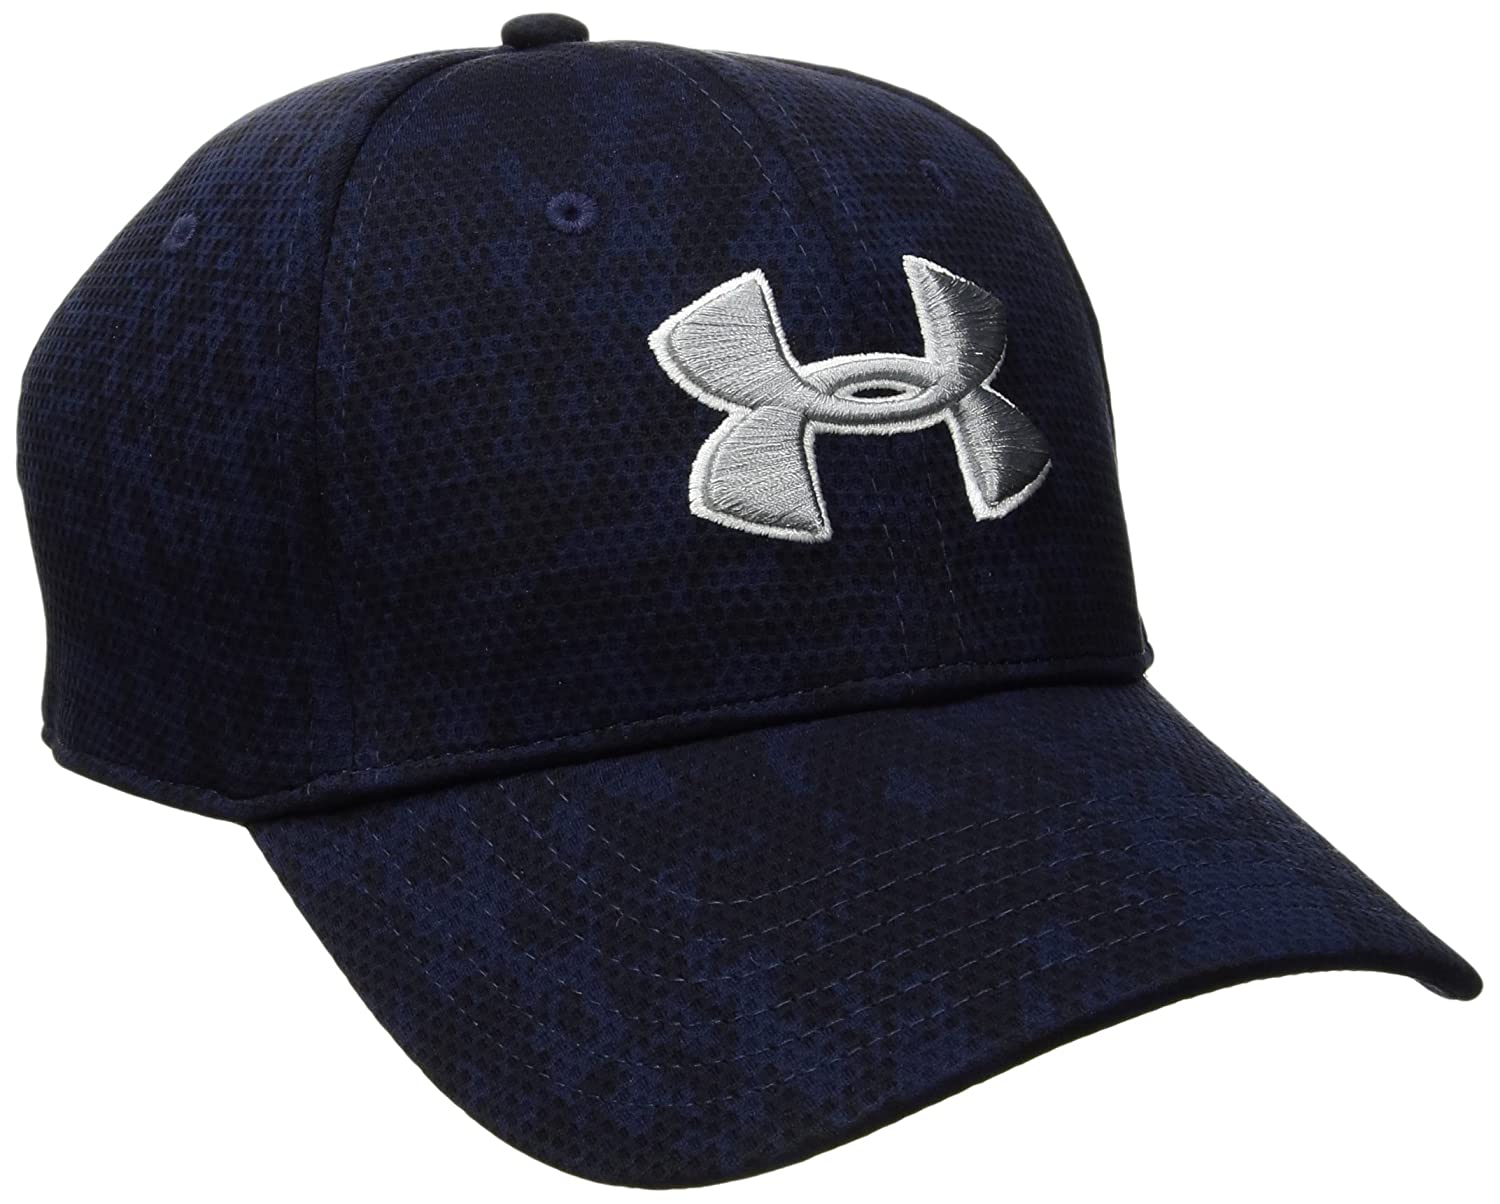 58083e8d2c8 ... Under Armour Mens Printed Blitzing Stretch Fit Cap Under Armour Men  s Printed  Blitzing Stretch ...